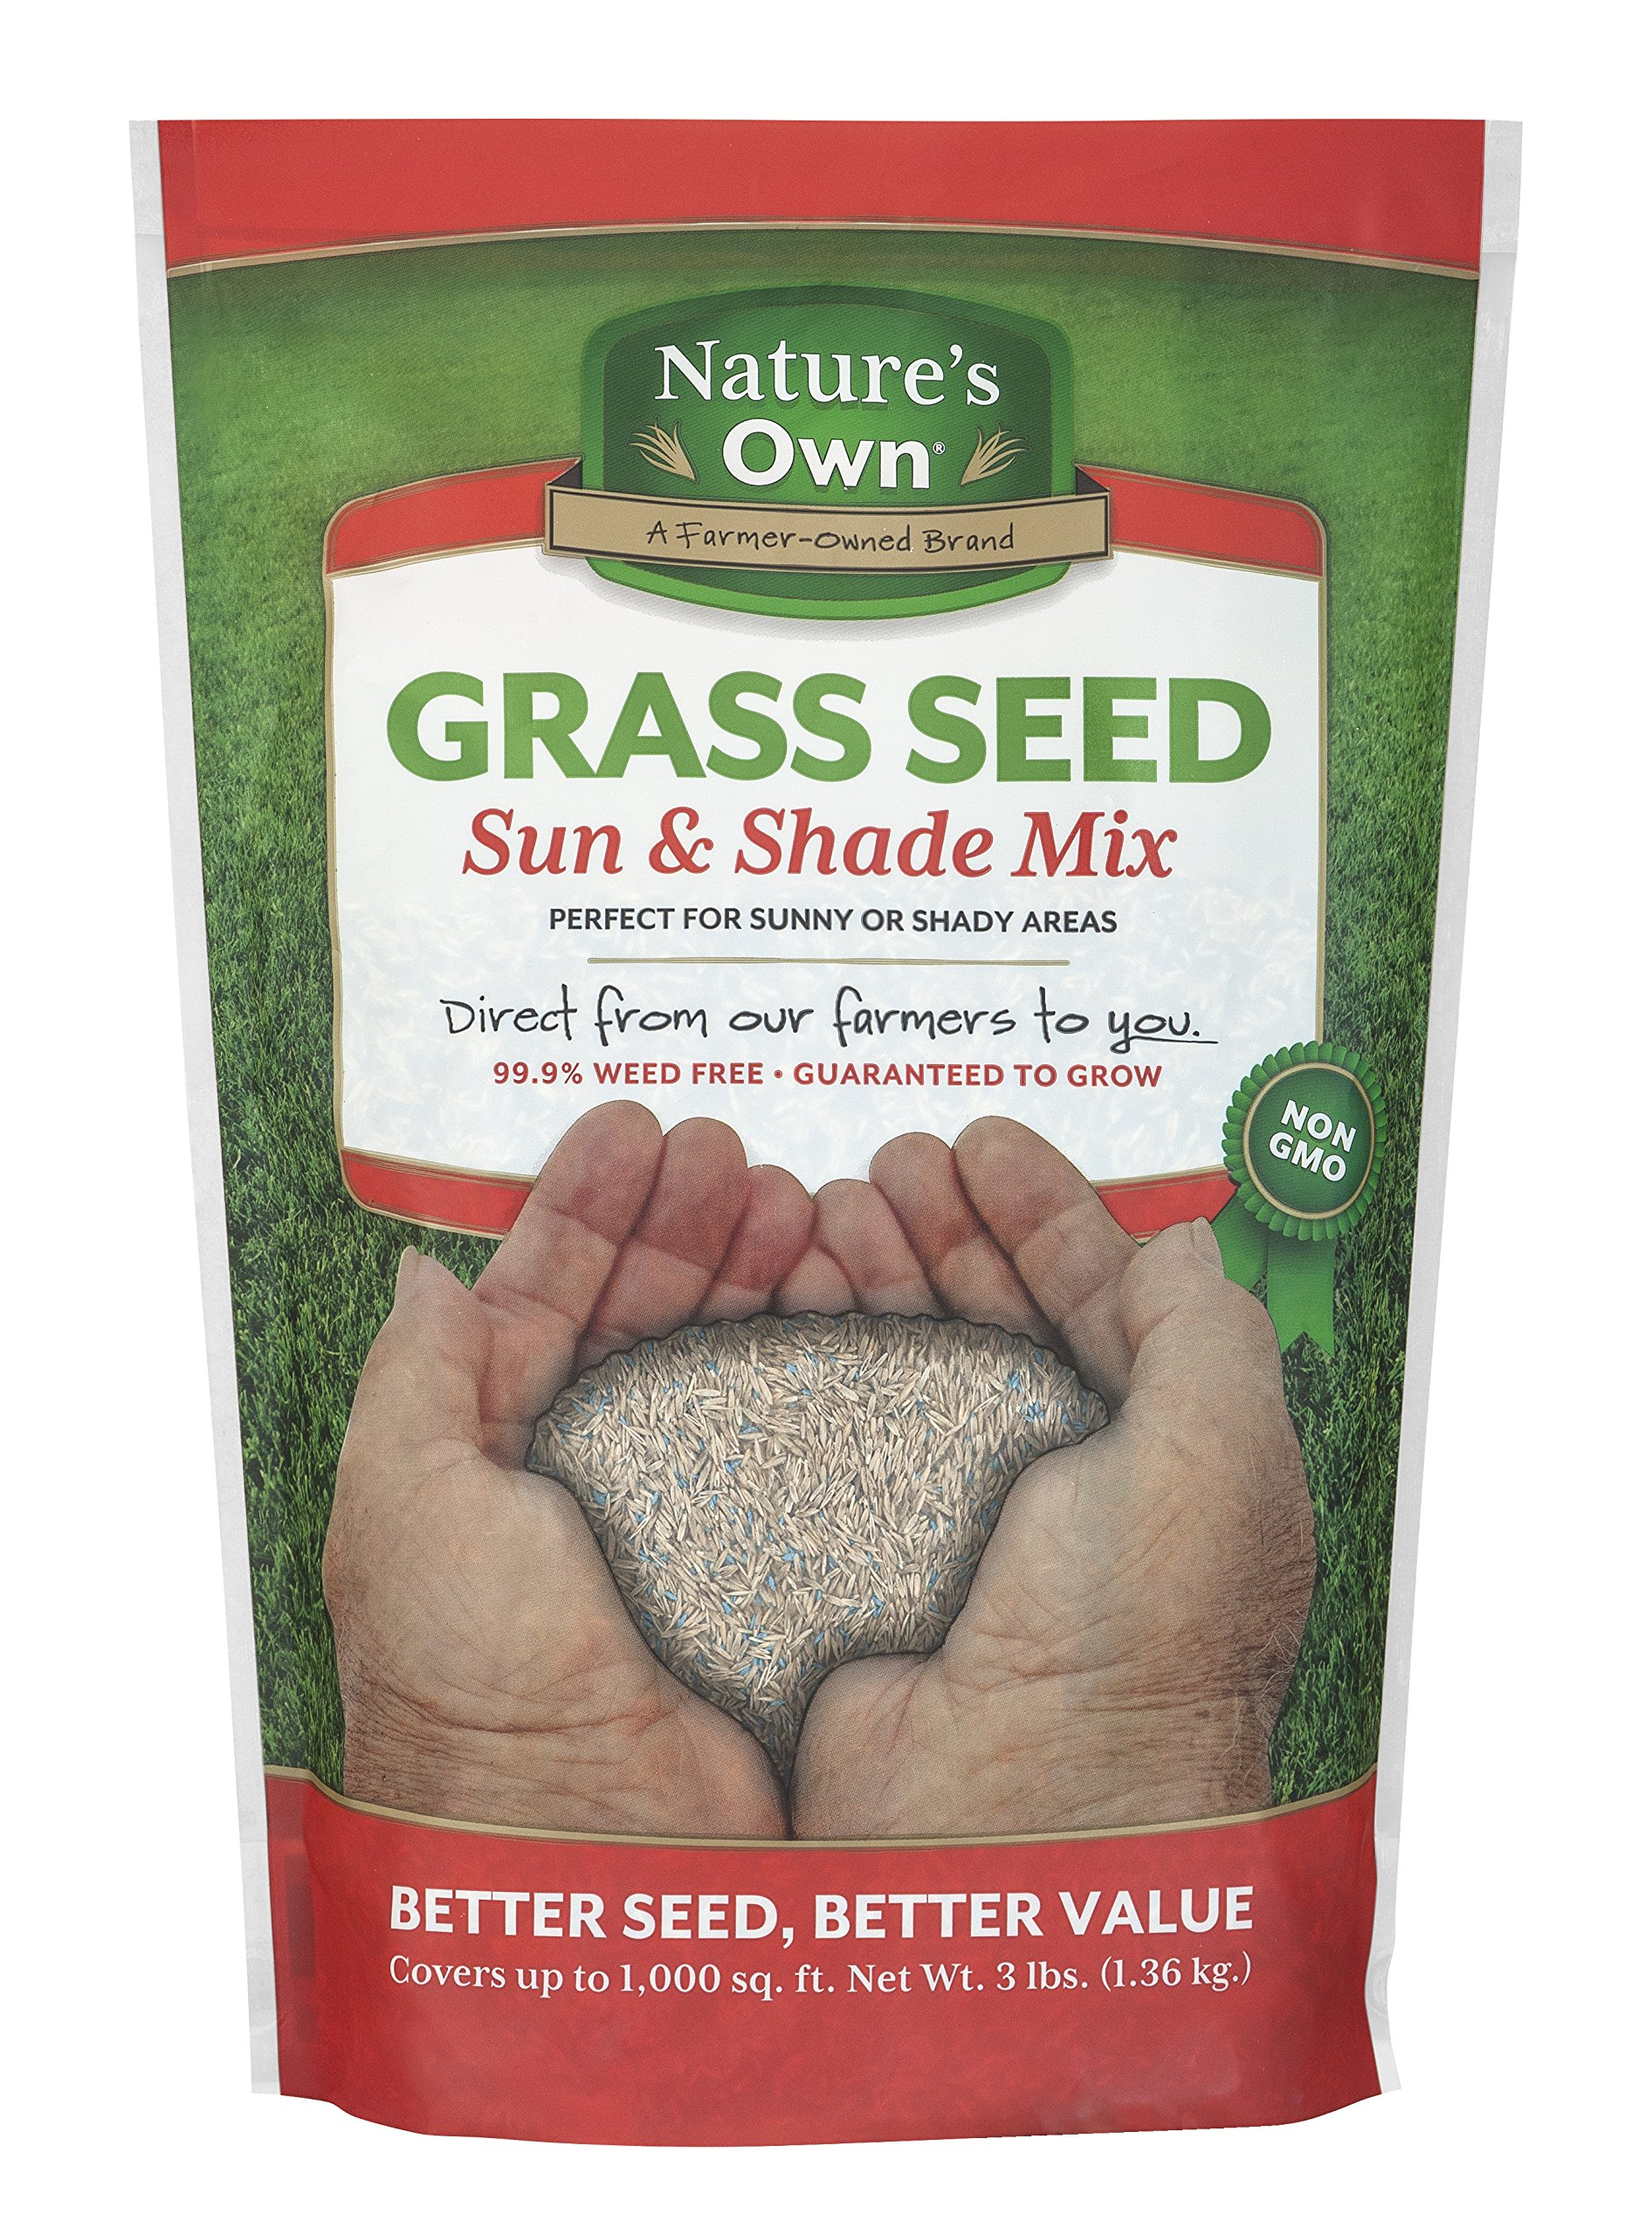 Mountain View Seeds Natures Own Sun & Shade Mix Grass Seed, 3-pounds by Mountain View Seed